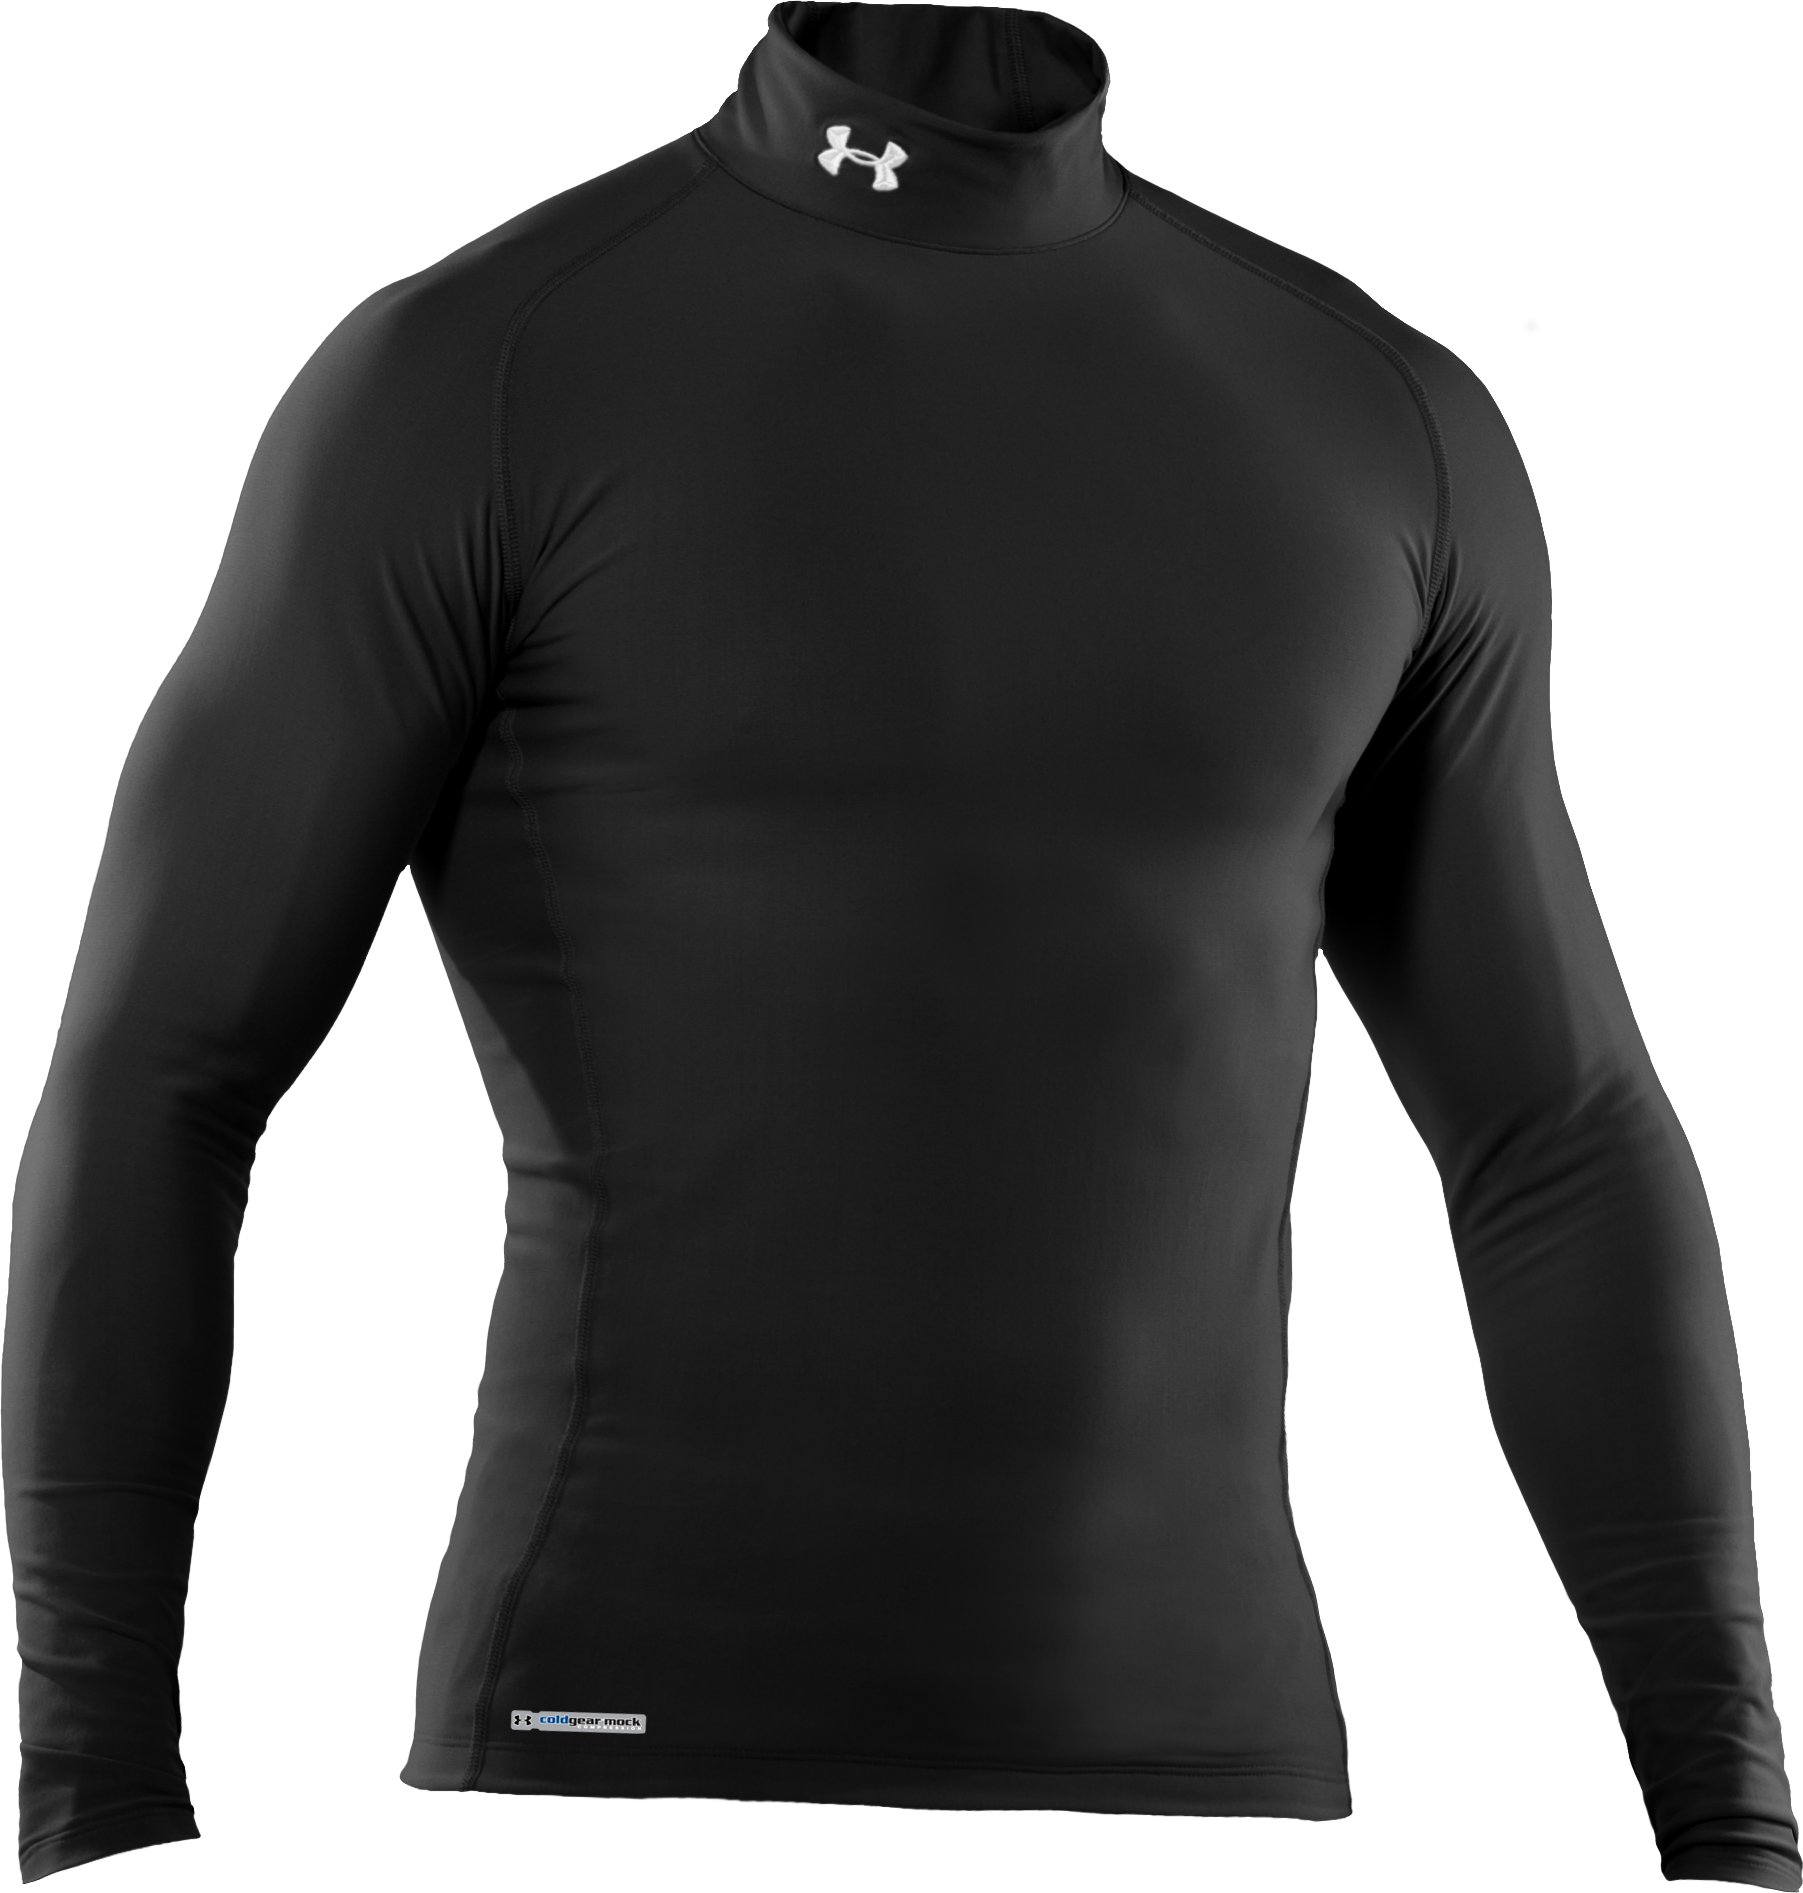 Men's ColdGear® Evo Long Sleeve Compression Mock, Black